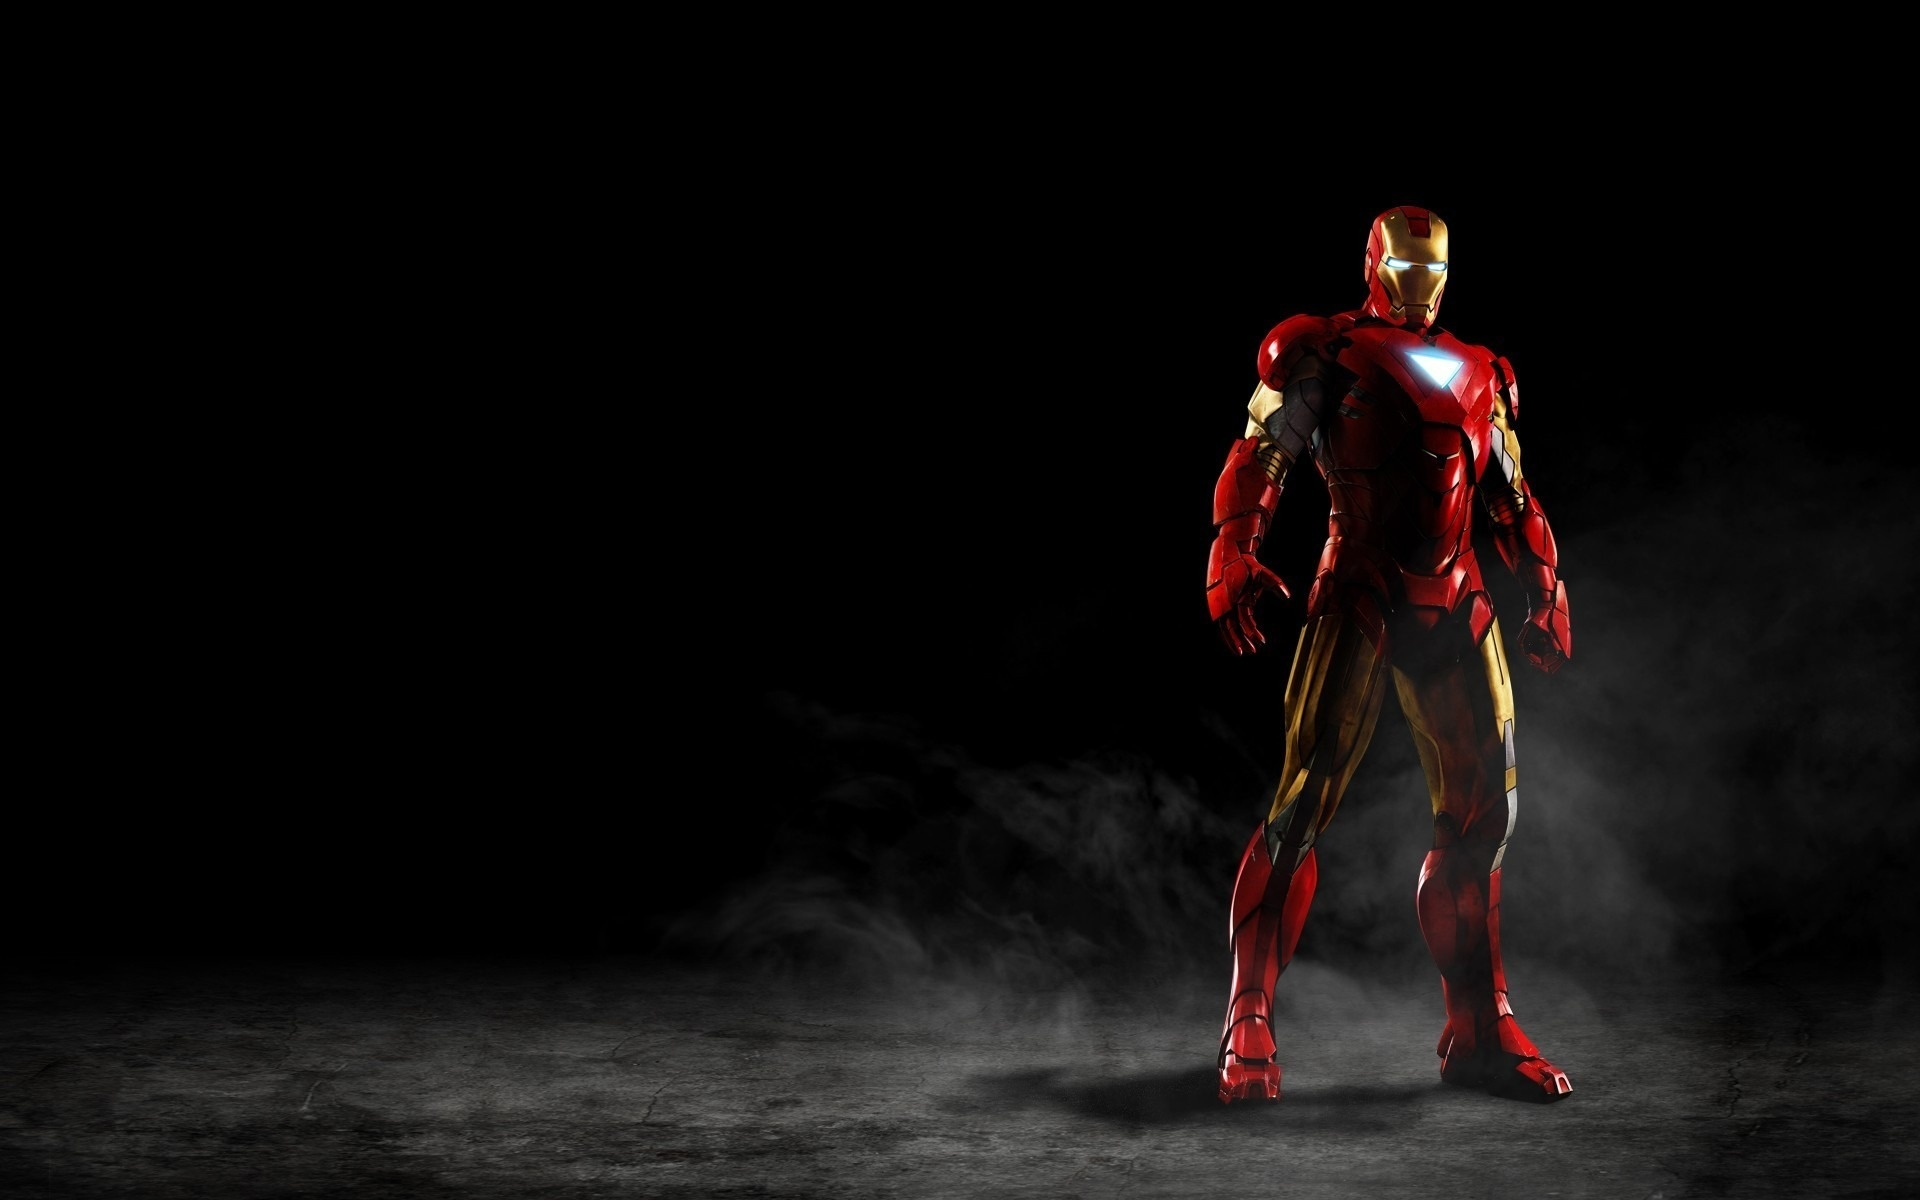 Iron Man Wallpapers Images Photos Pictures Backgrounds 1920x1200